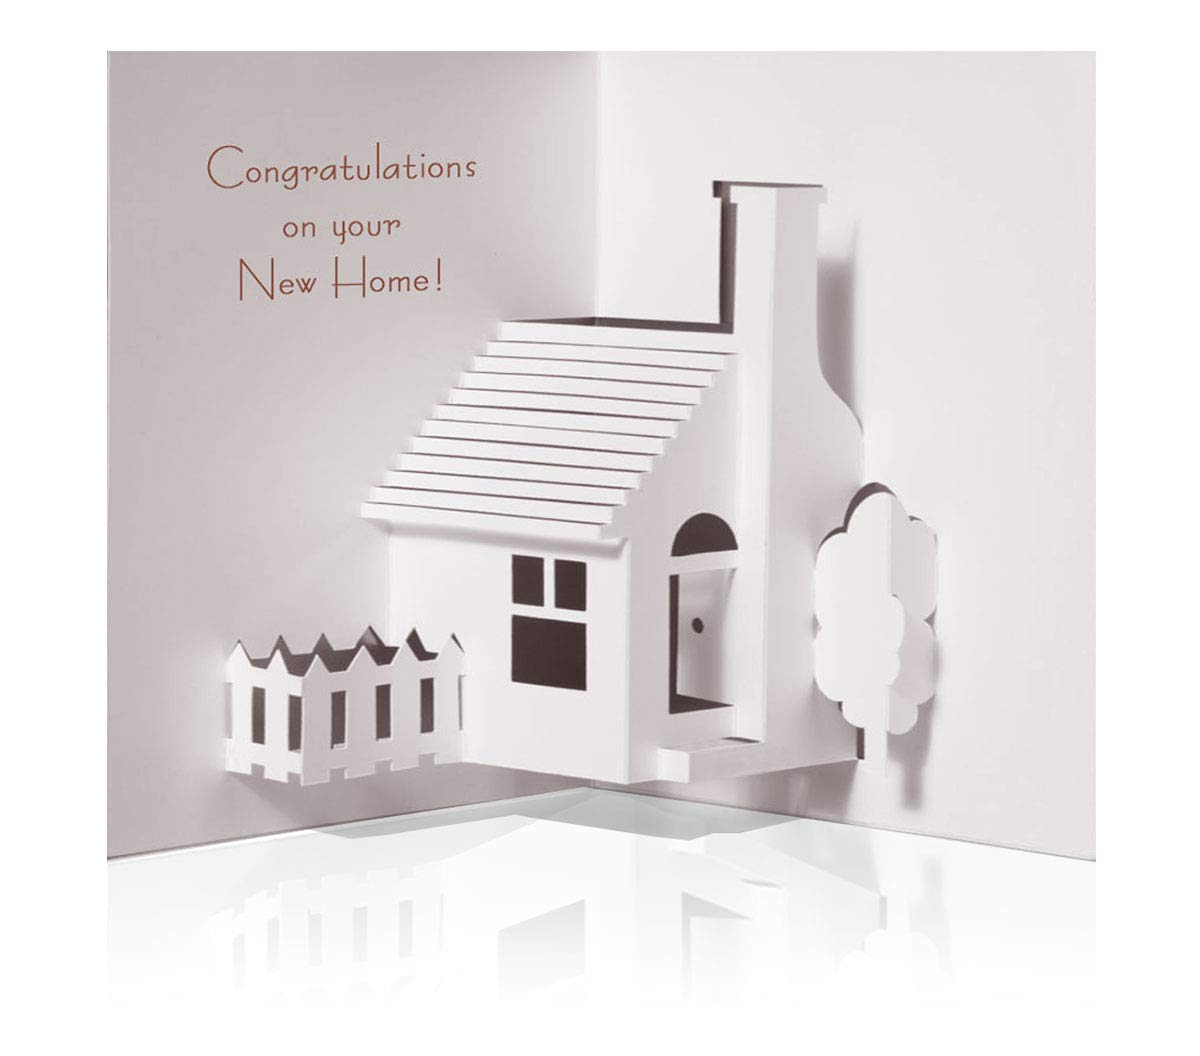 10 Pack Pop up House Warming Congratulations Card by popupcards.com